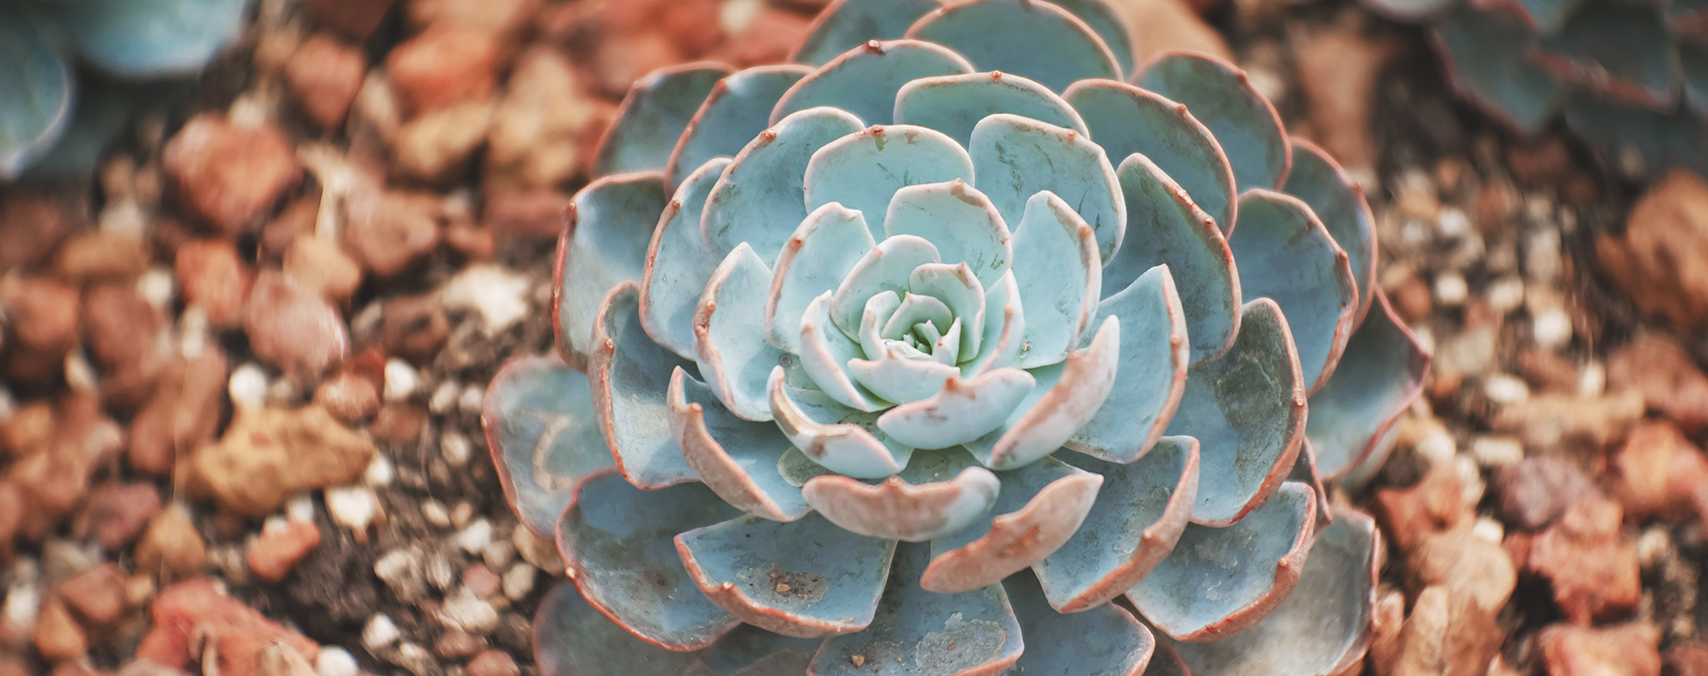 8 Rare Succulents Worth Exploring